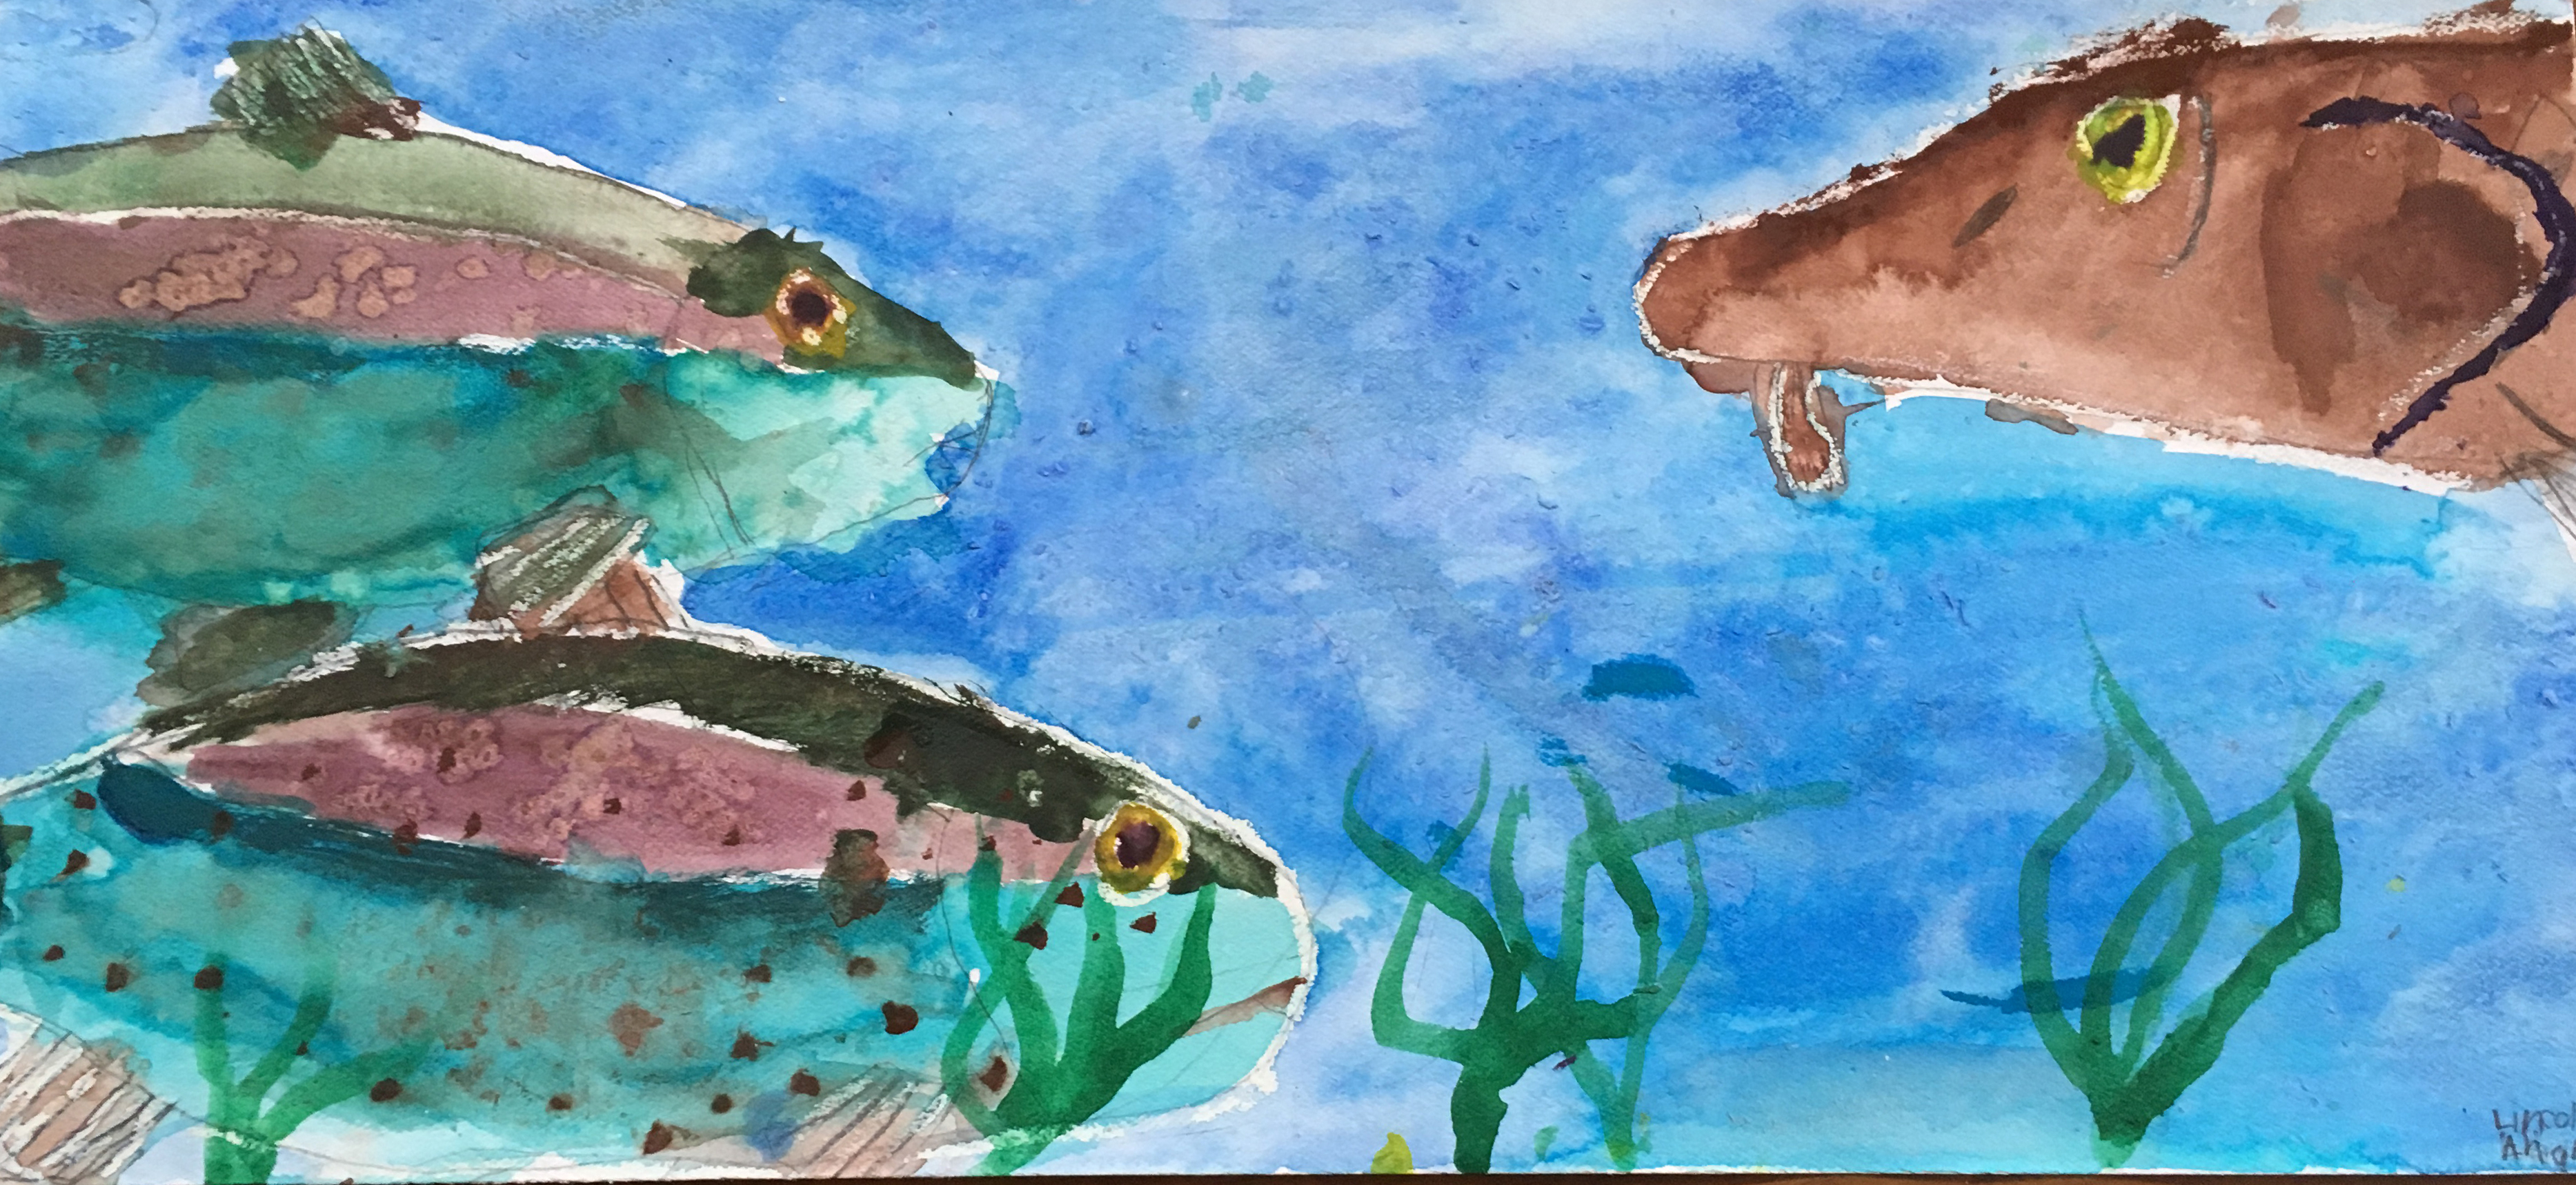 Watercolor painting of three fish and three aquatic plants in blue water.